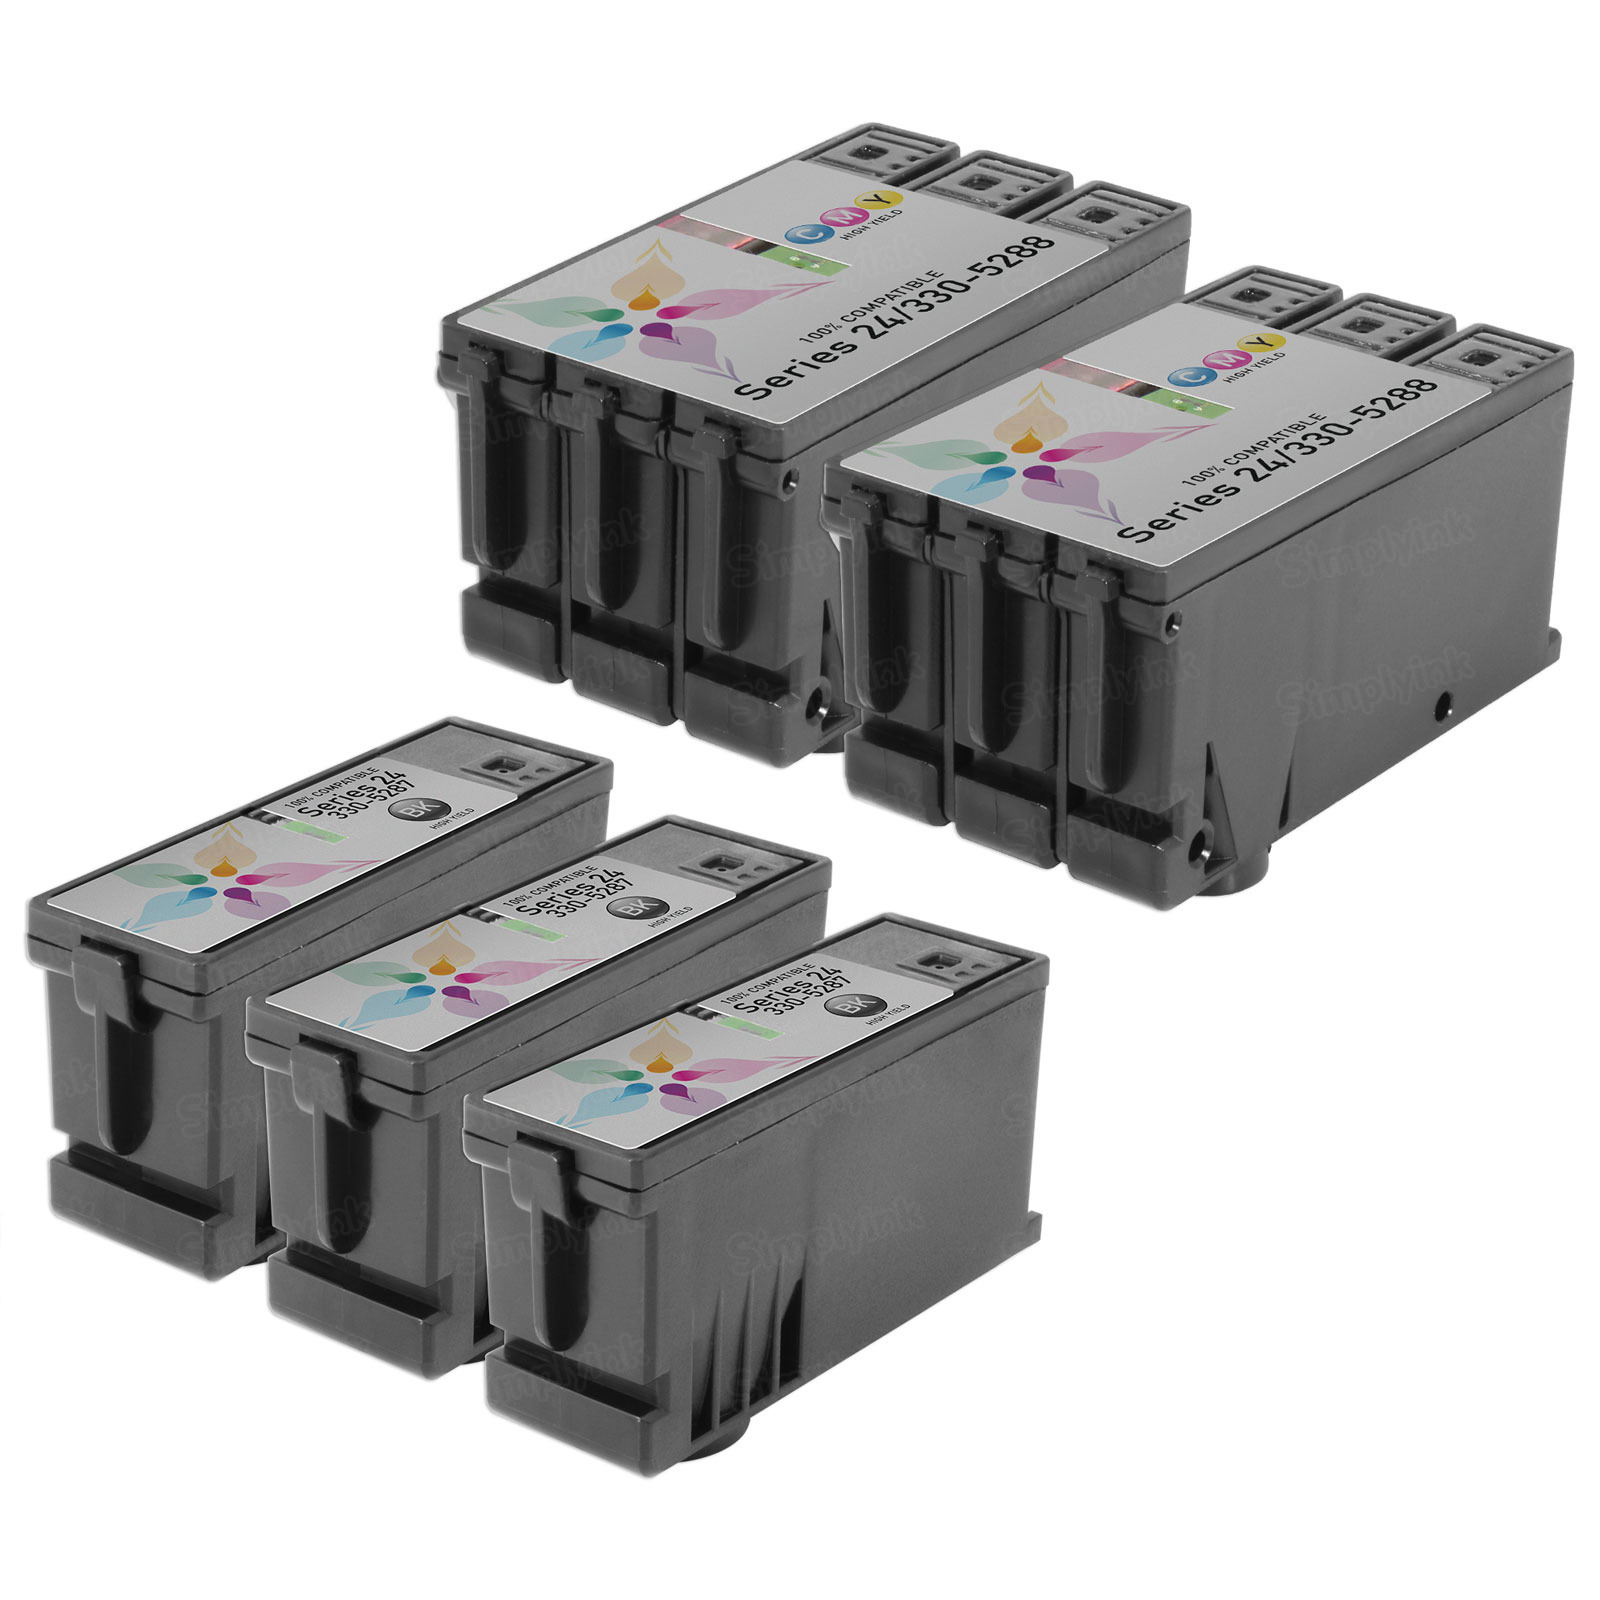 Inkjet Supplies for Dell Printers - Compatible Bulk Set of 5 Ink Cartridges - 3 Black Dell T109N (Series 24) and 2 Color Dell T110N (Series 24)